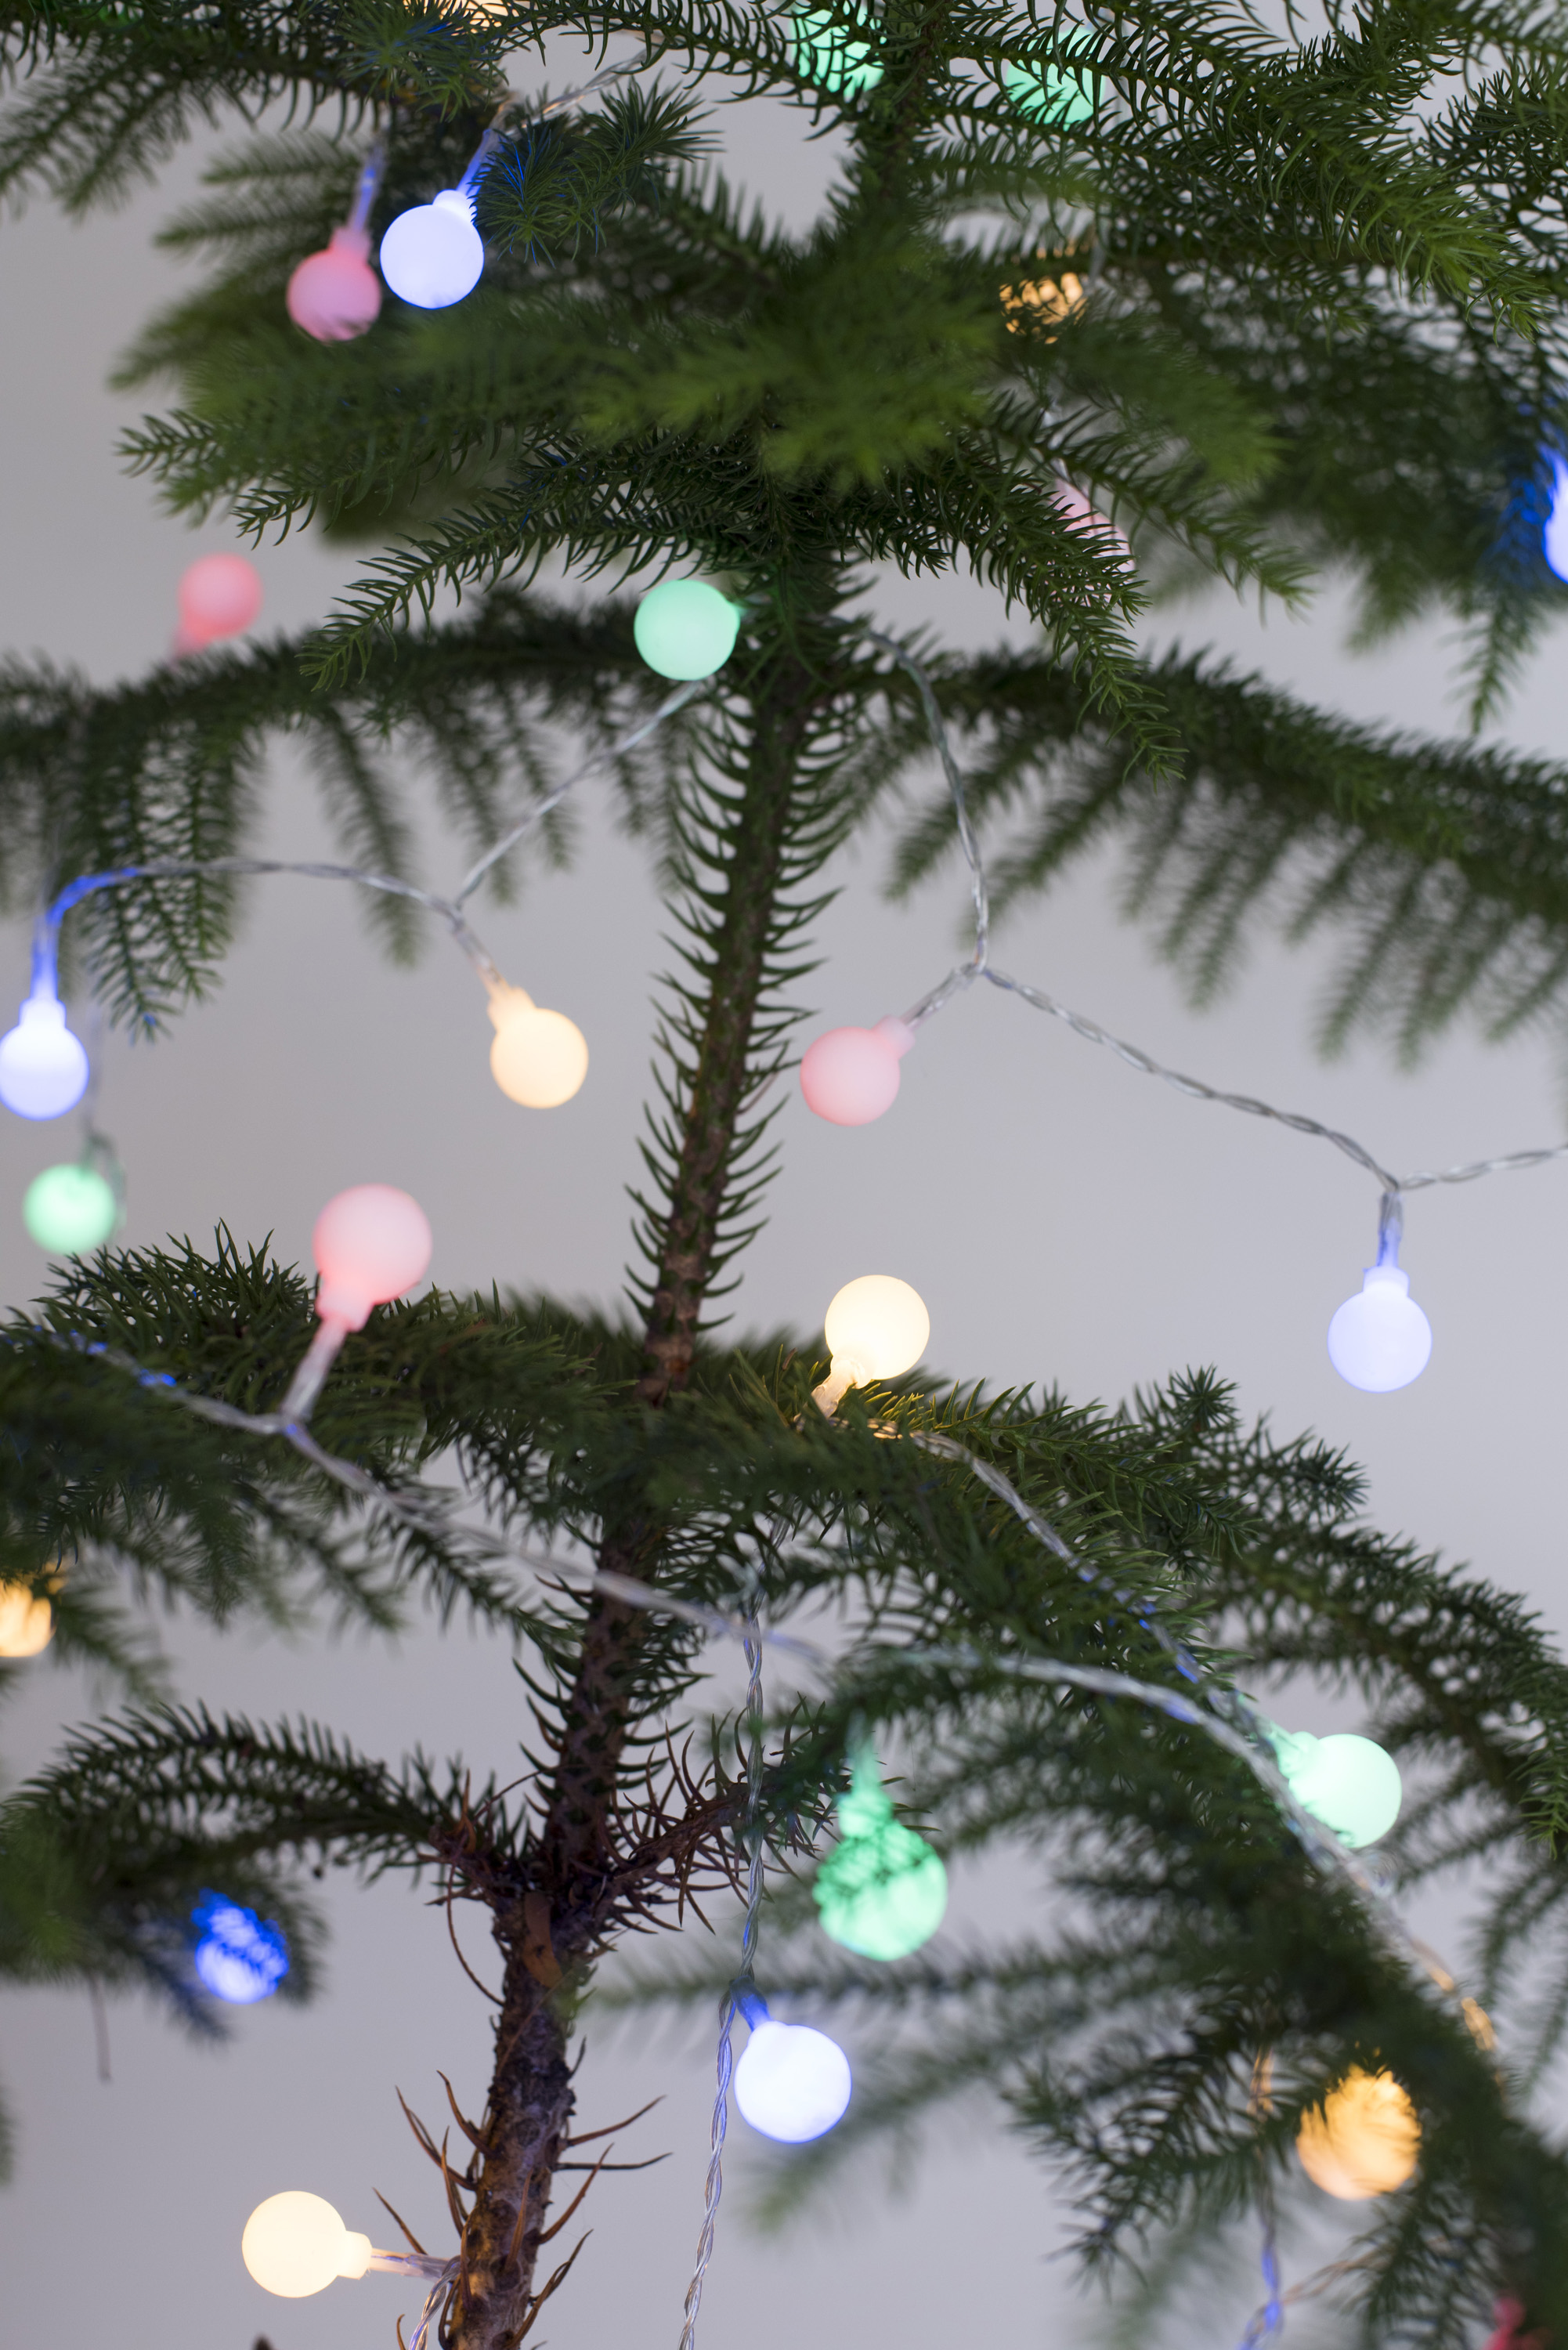 Colorful Shining Christmas Lights On A Natural Evergreen Pine Tree In Close Up View For